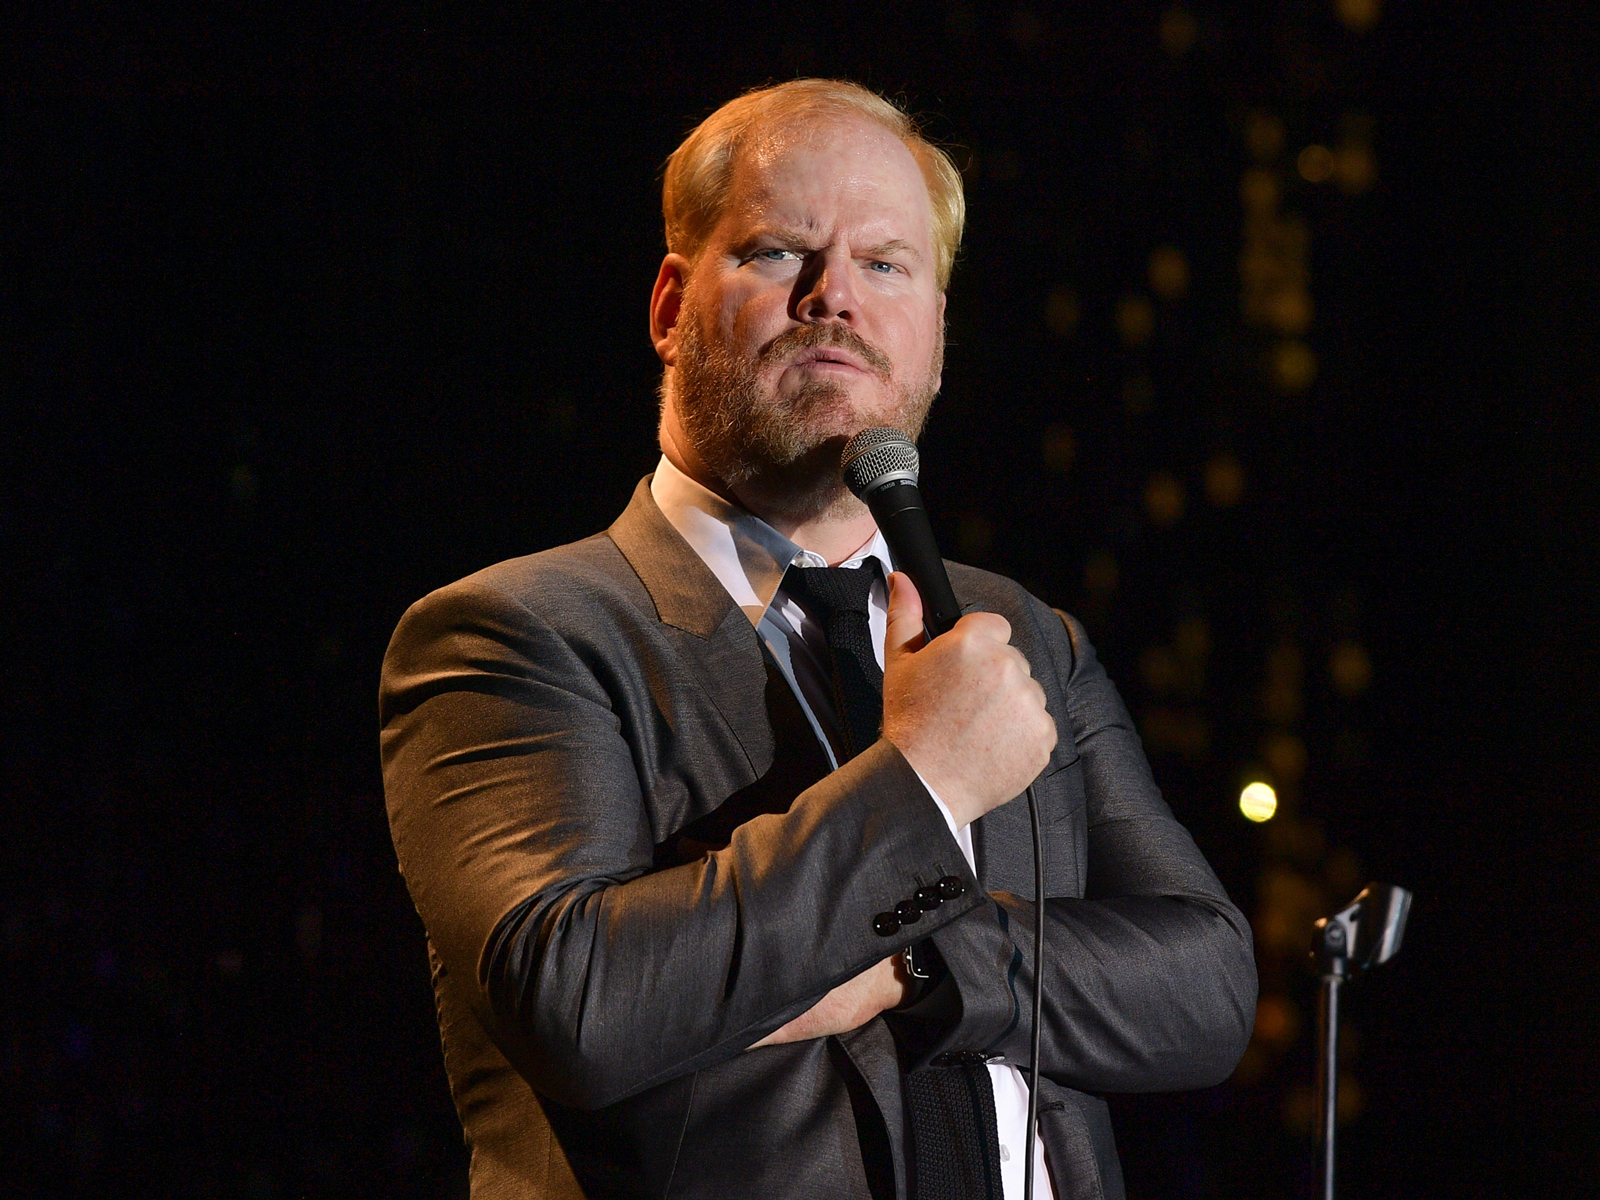 jim-gaffigan-craft-beer-FT-BLOG0918.jpg